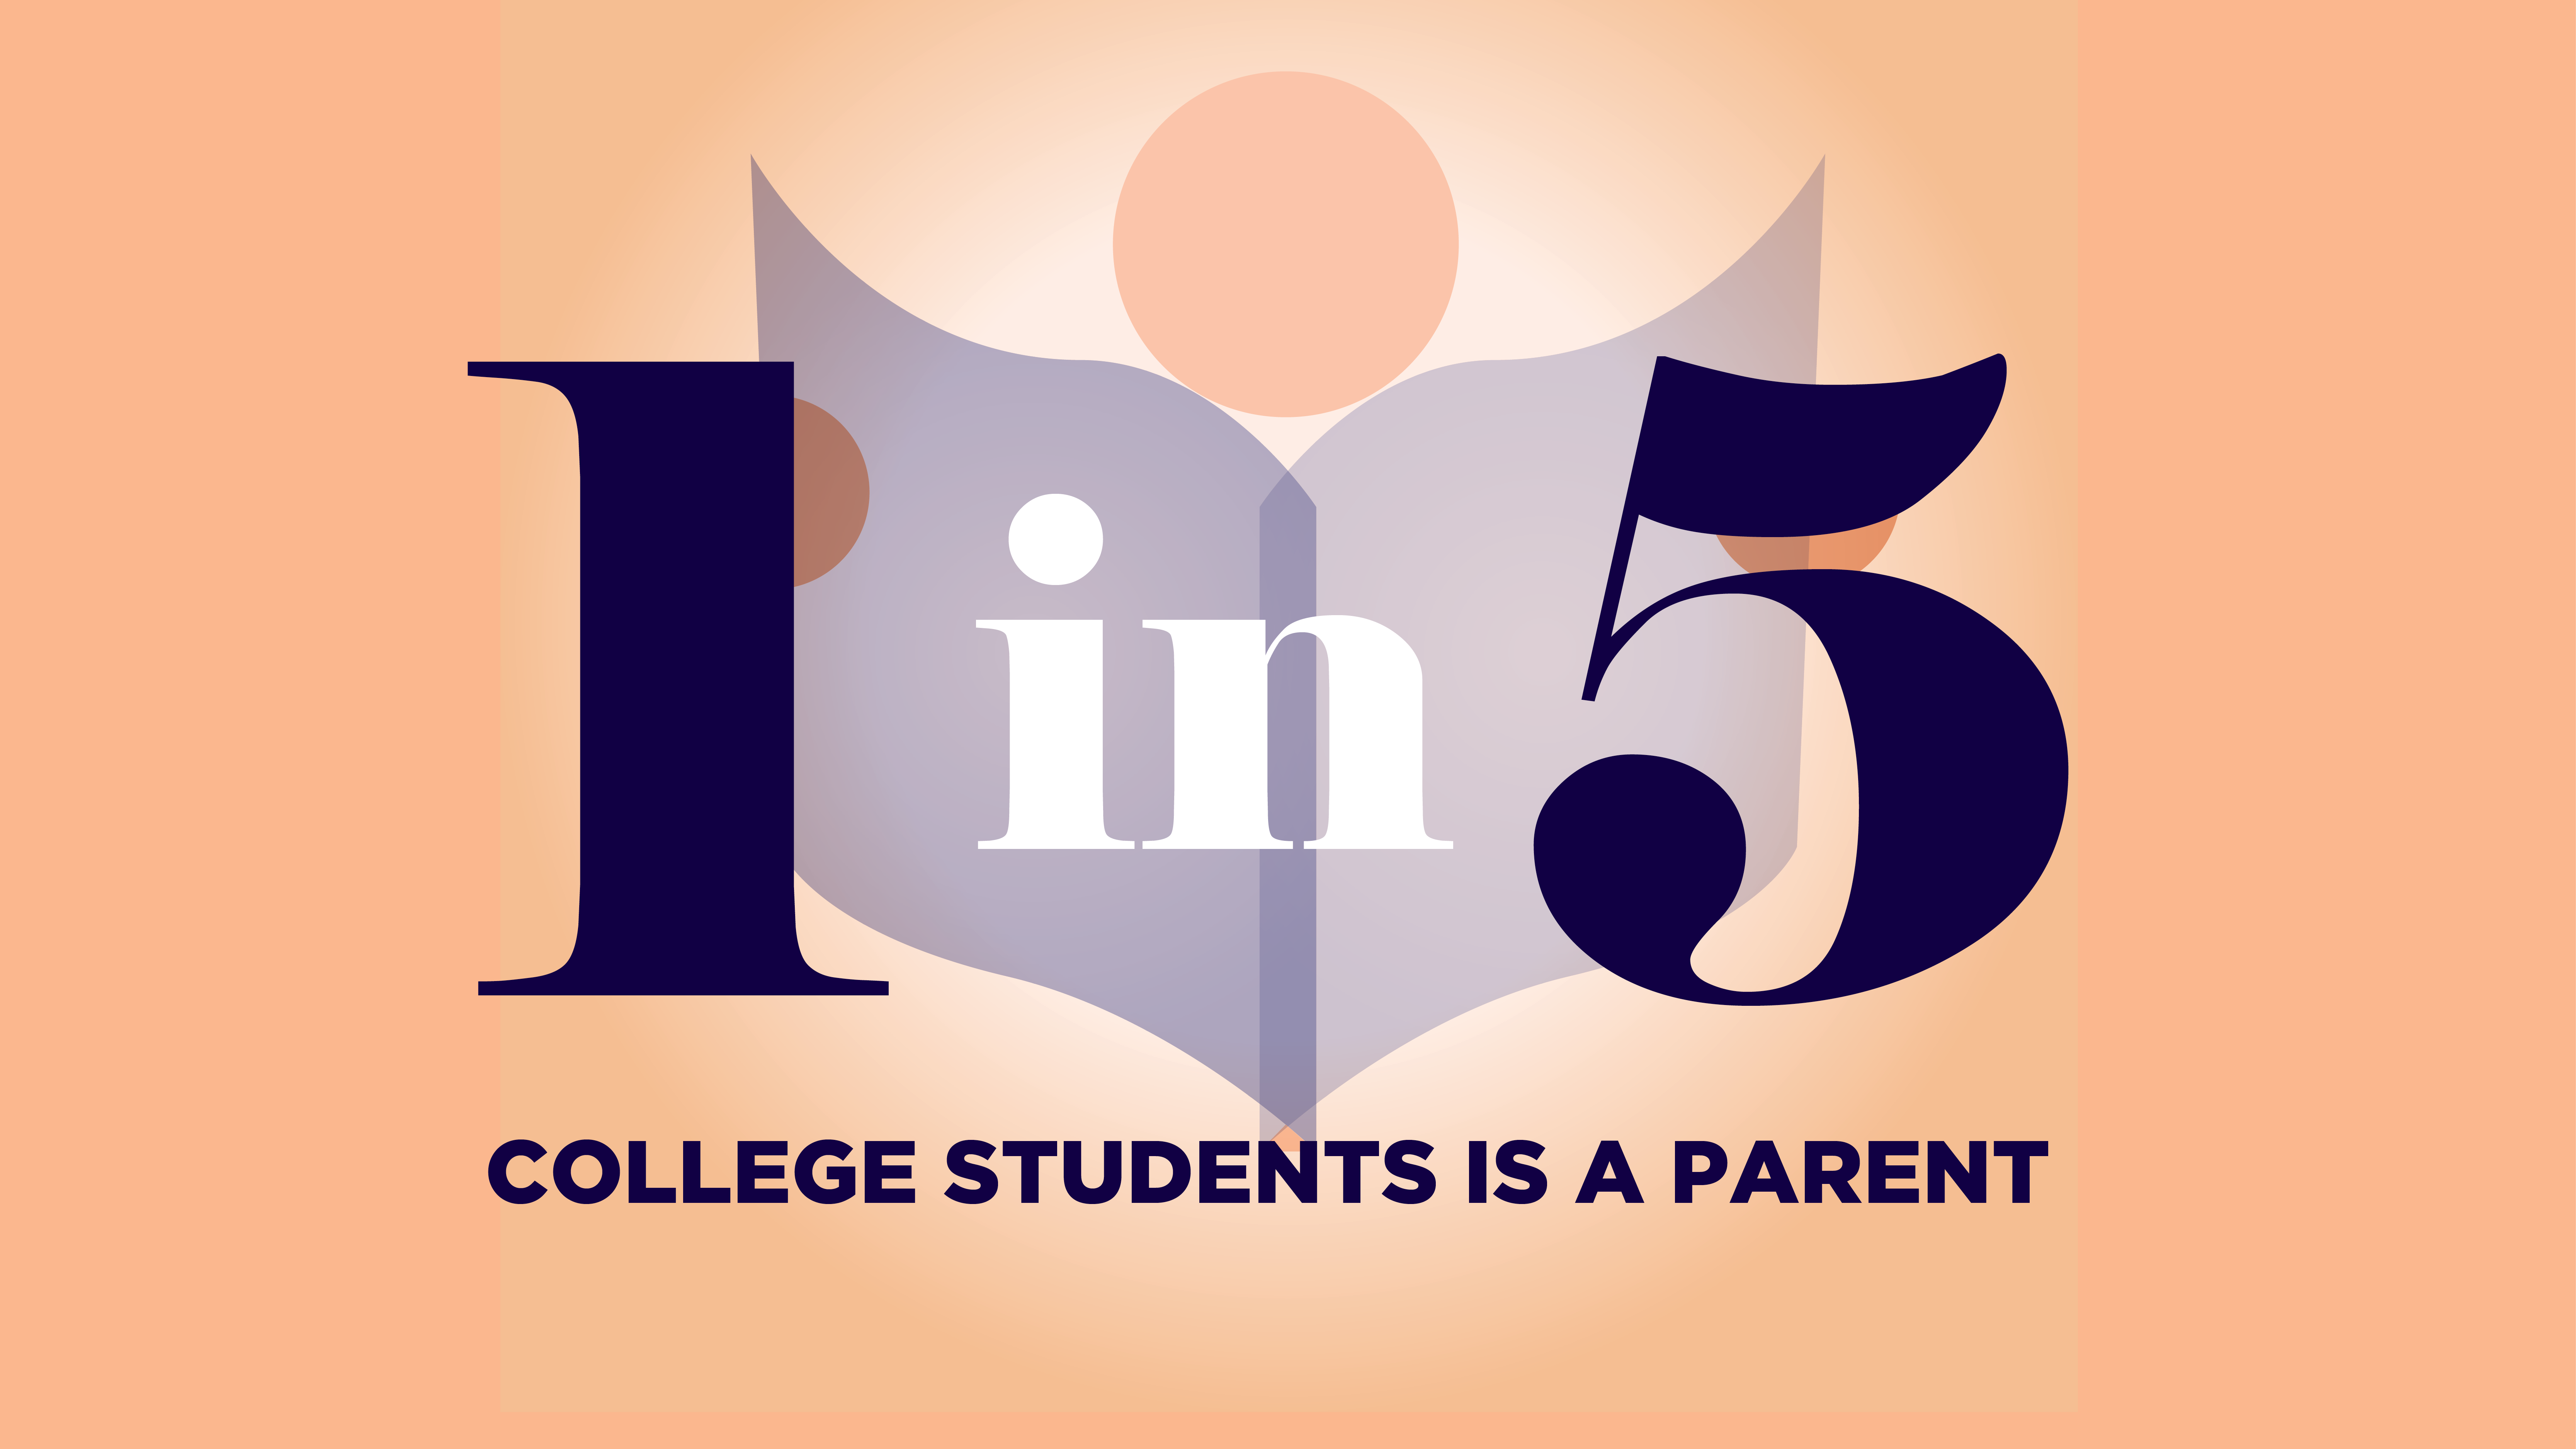 Tune In To Ascend's Student Parent Podcast: 1 in 5!